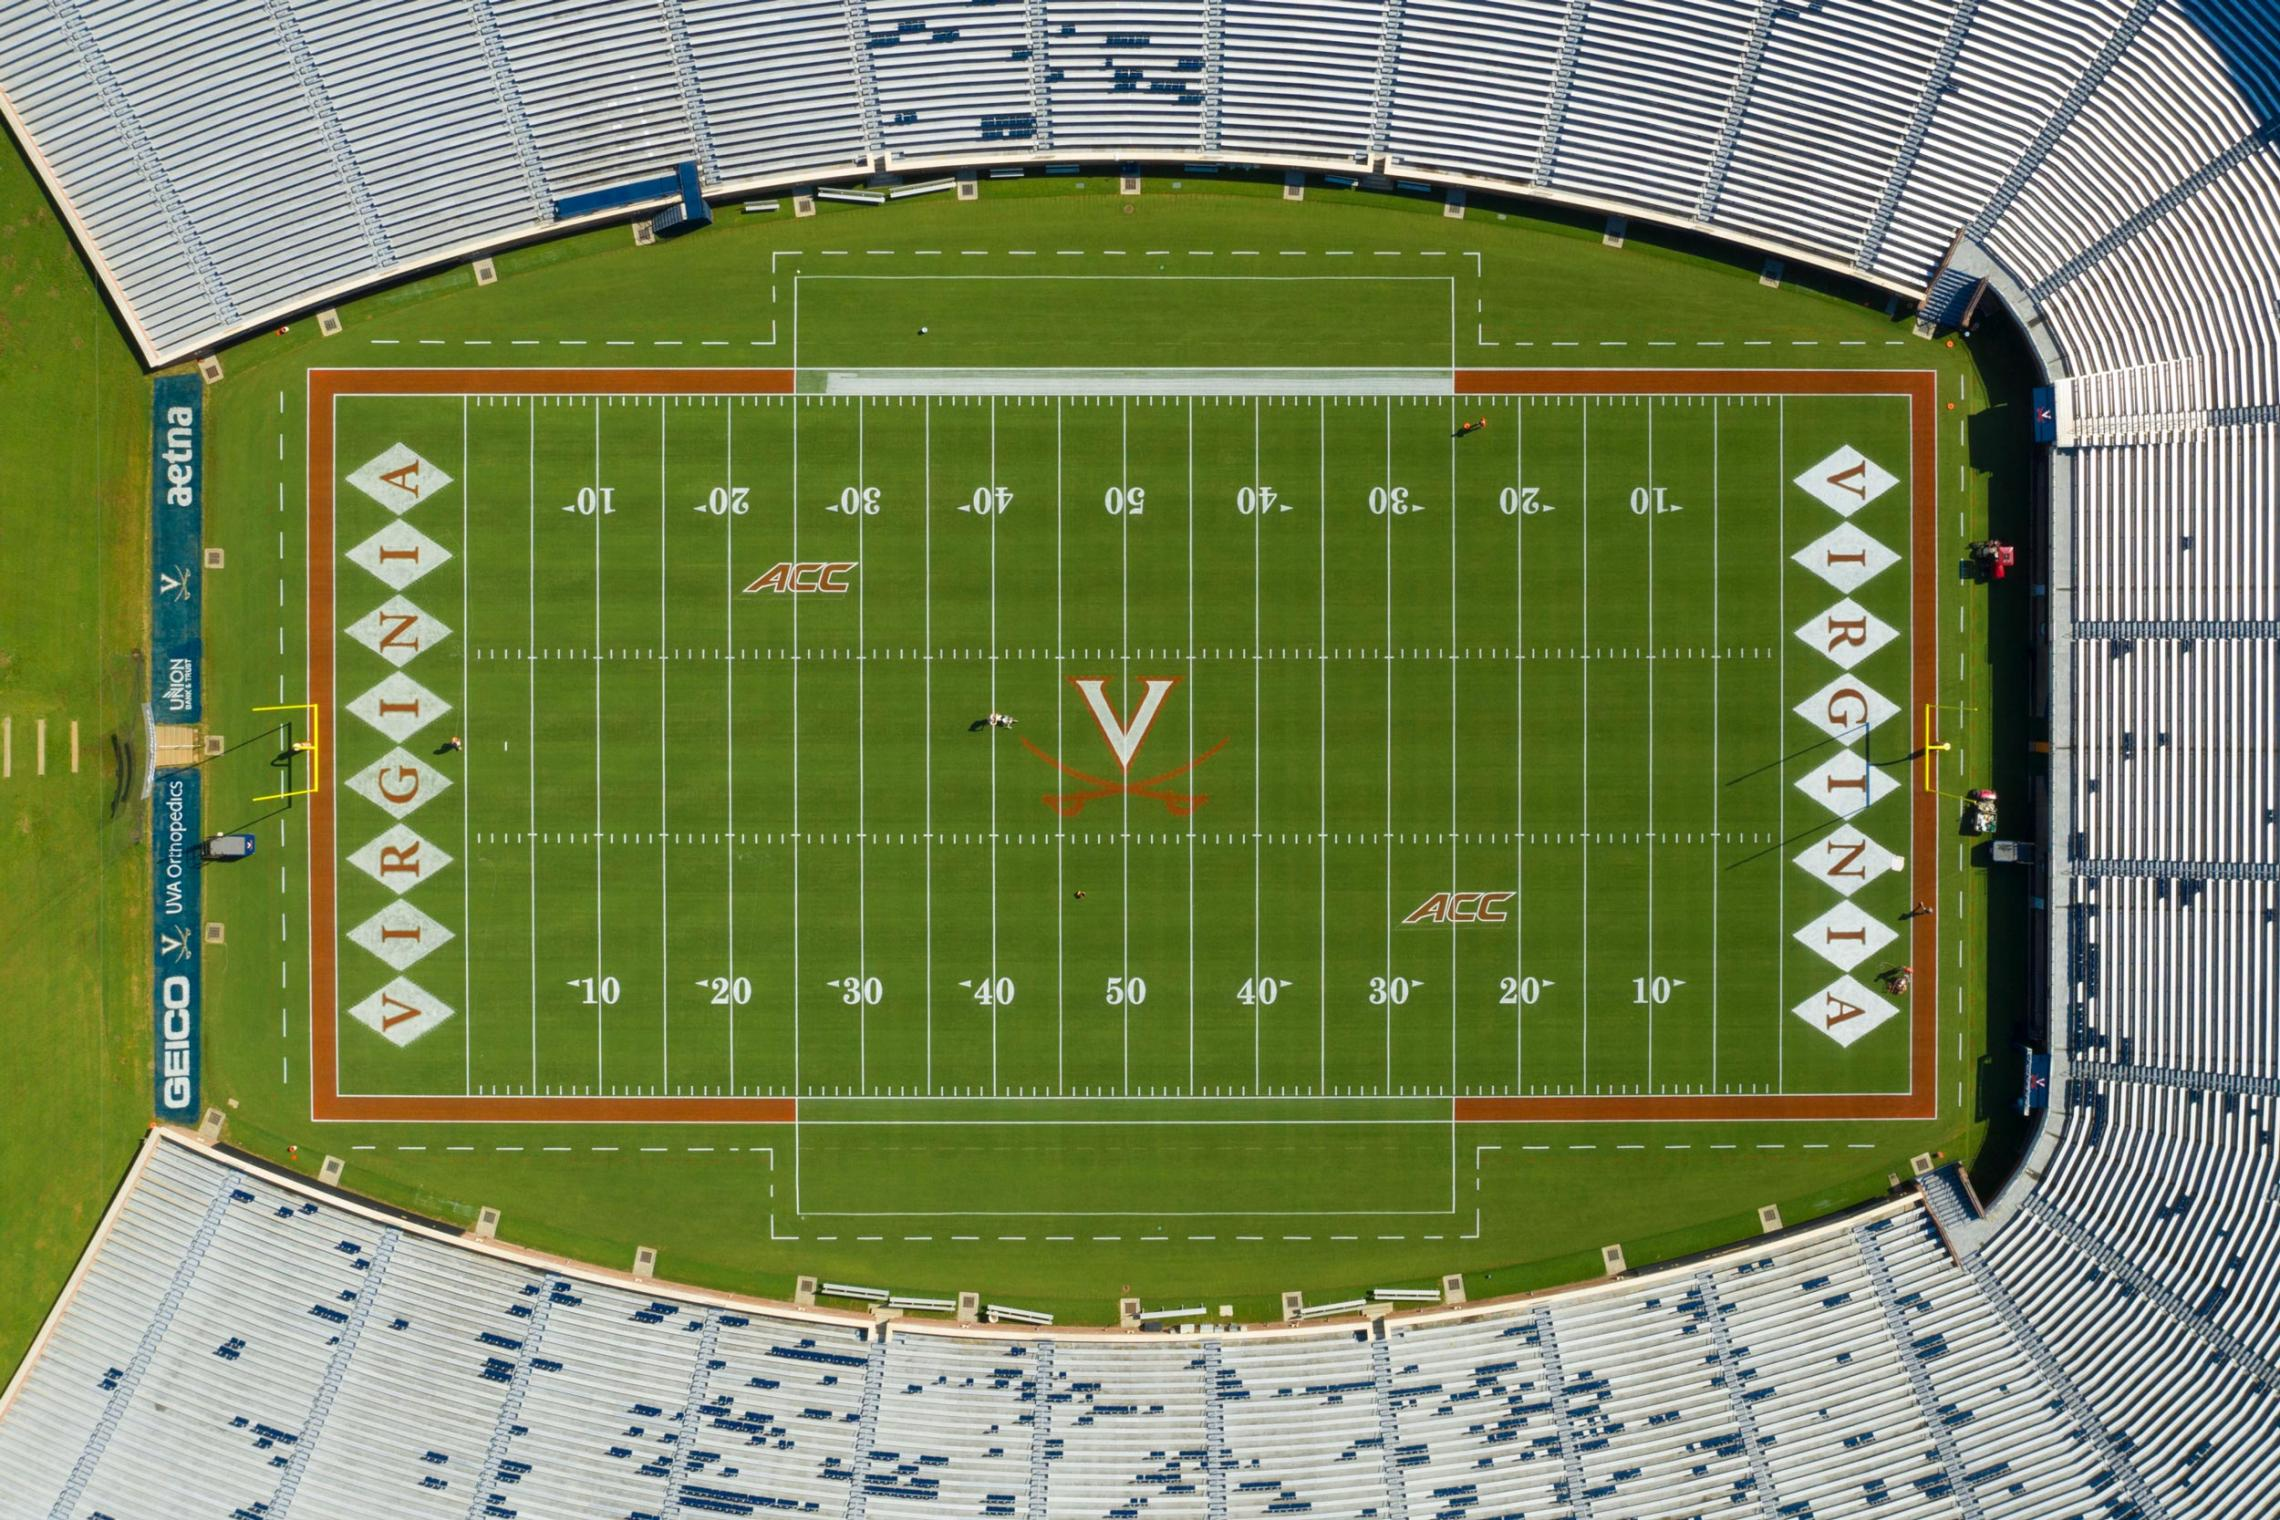 When fans fill in the seats at Scott Stadium beginning Sept. 6, they will find several new changes intended to improve their experience.